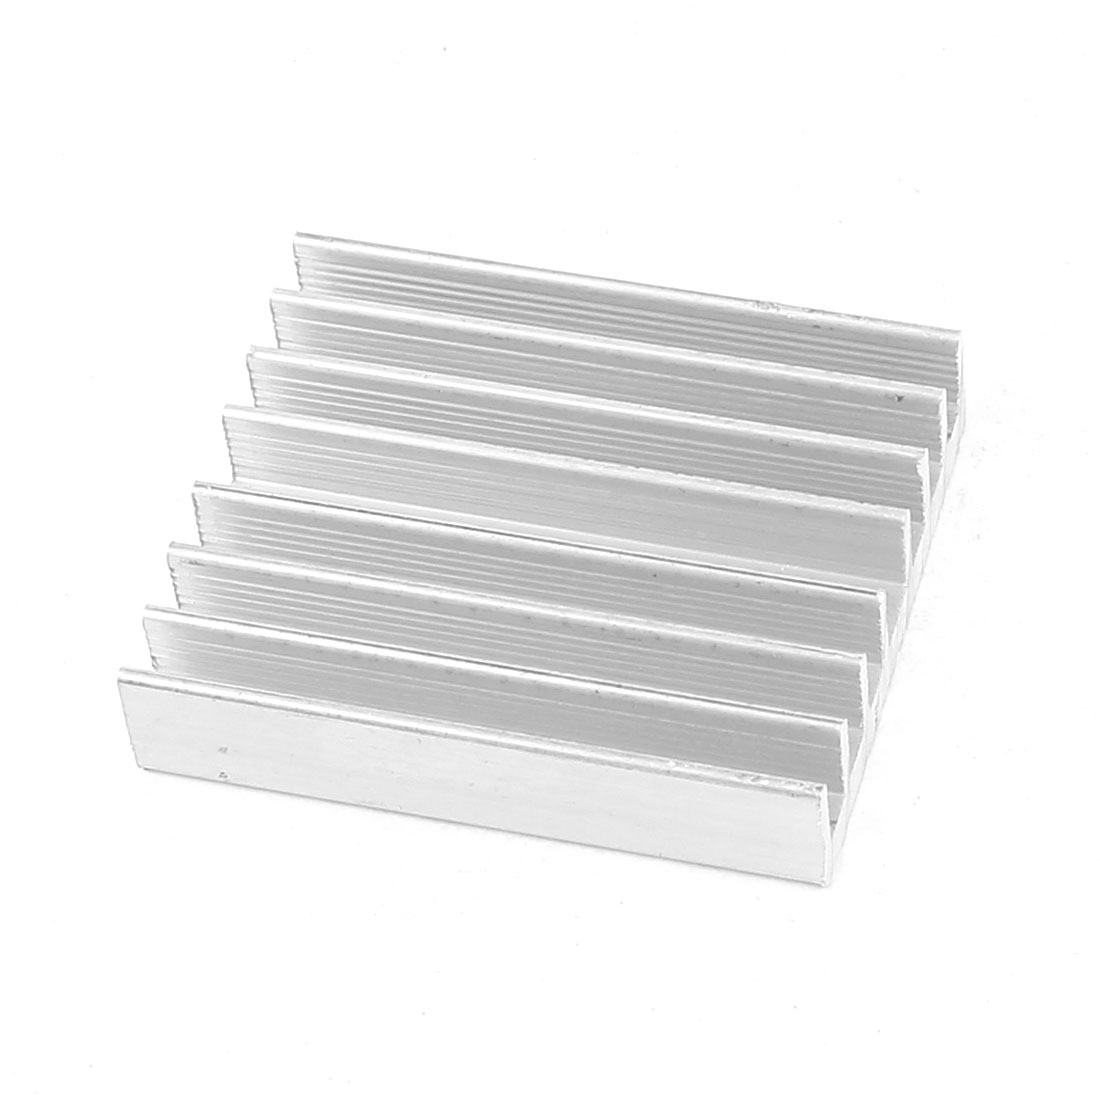 Rectangle 52mm x 43mm x 10mm LED Lamp Heatsink Aluminium Cooling Fin